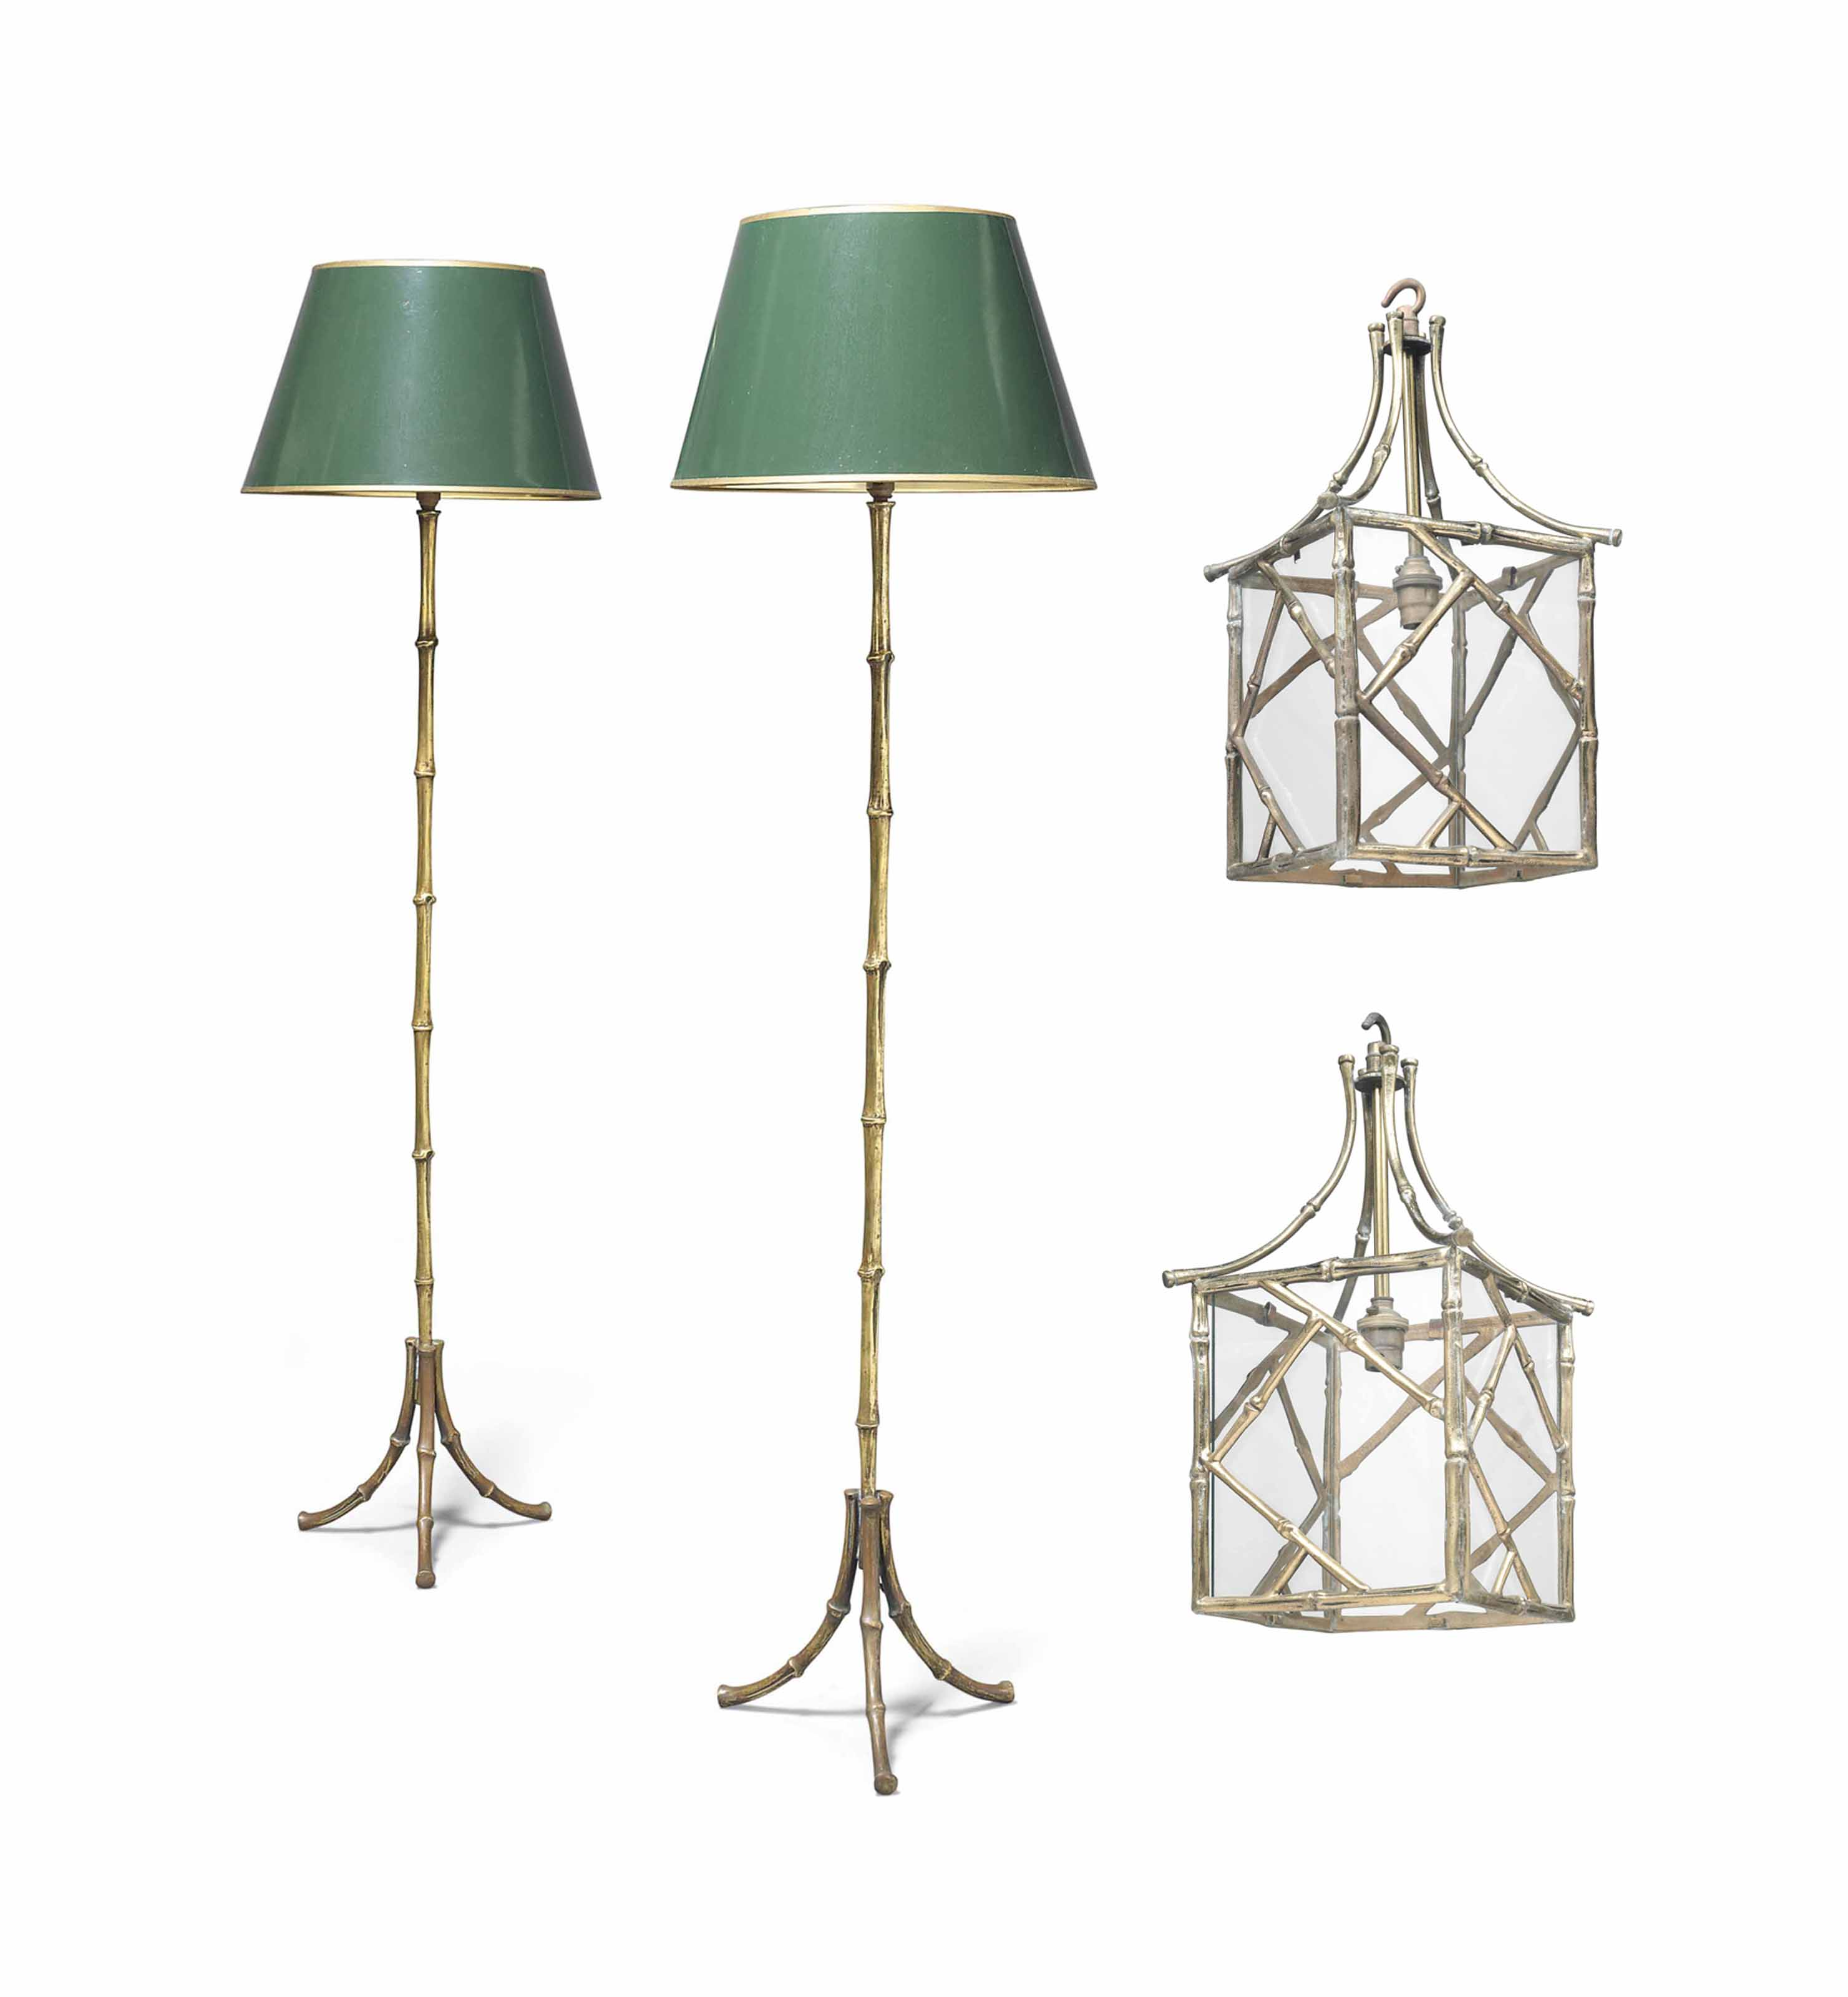 A PAIR OF BRASS FAUX-BAMBOO HA